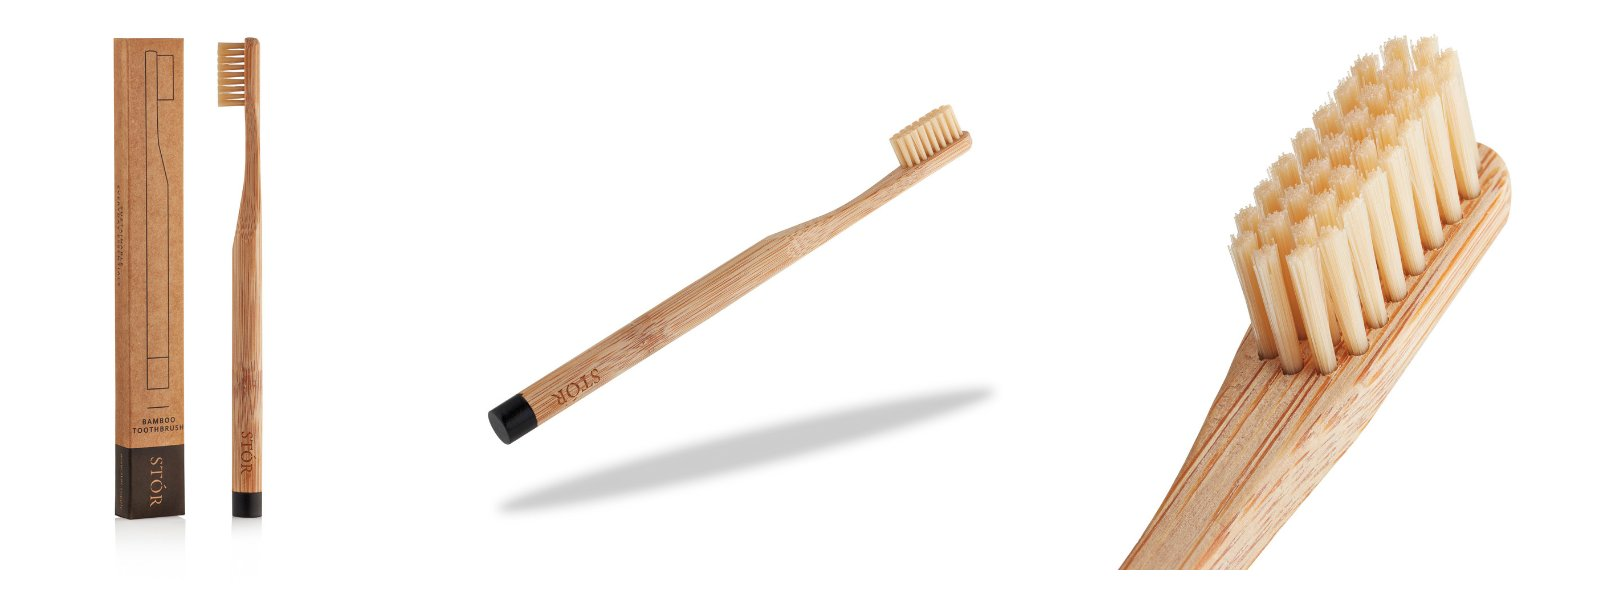 Bamboo Toothbrush Collection